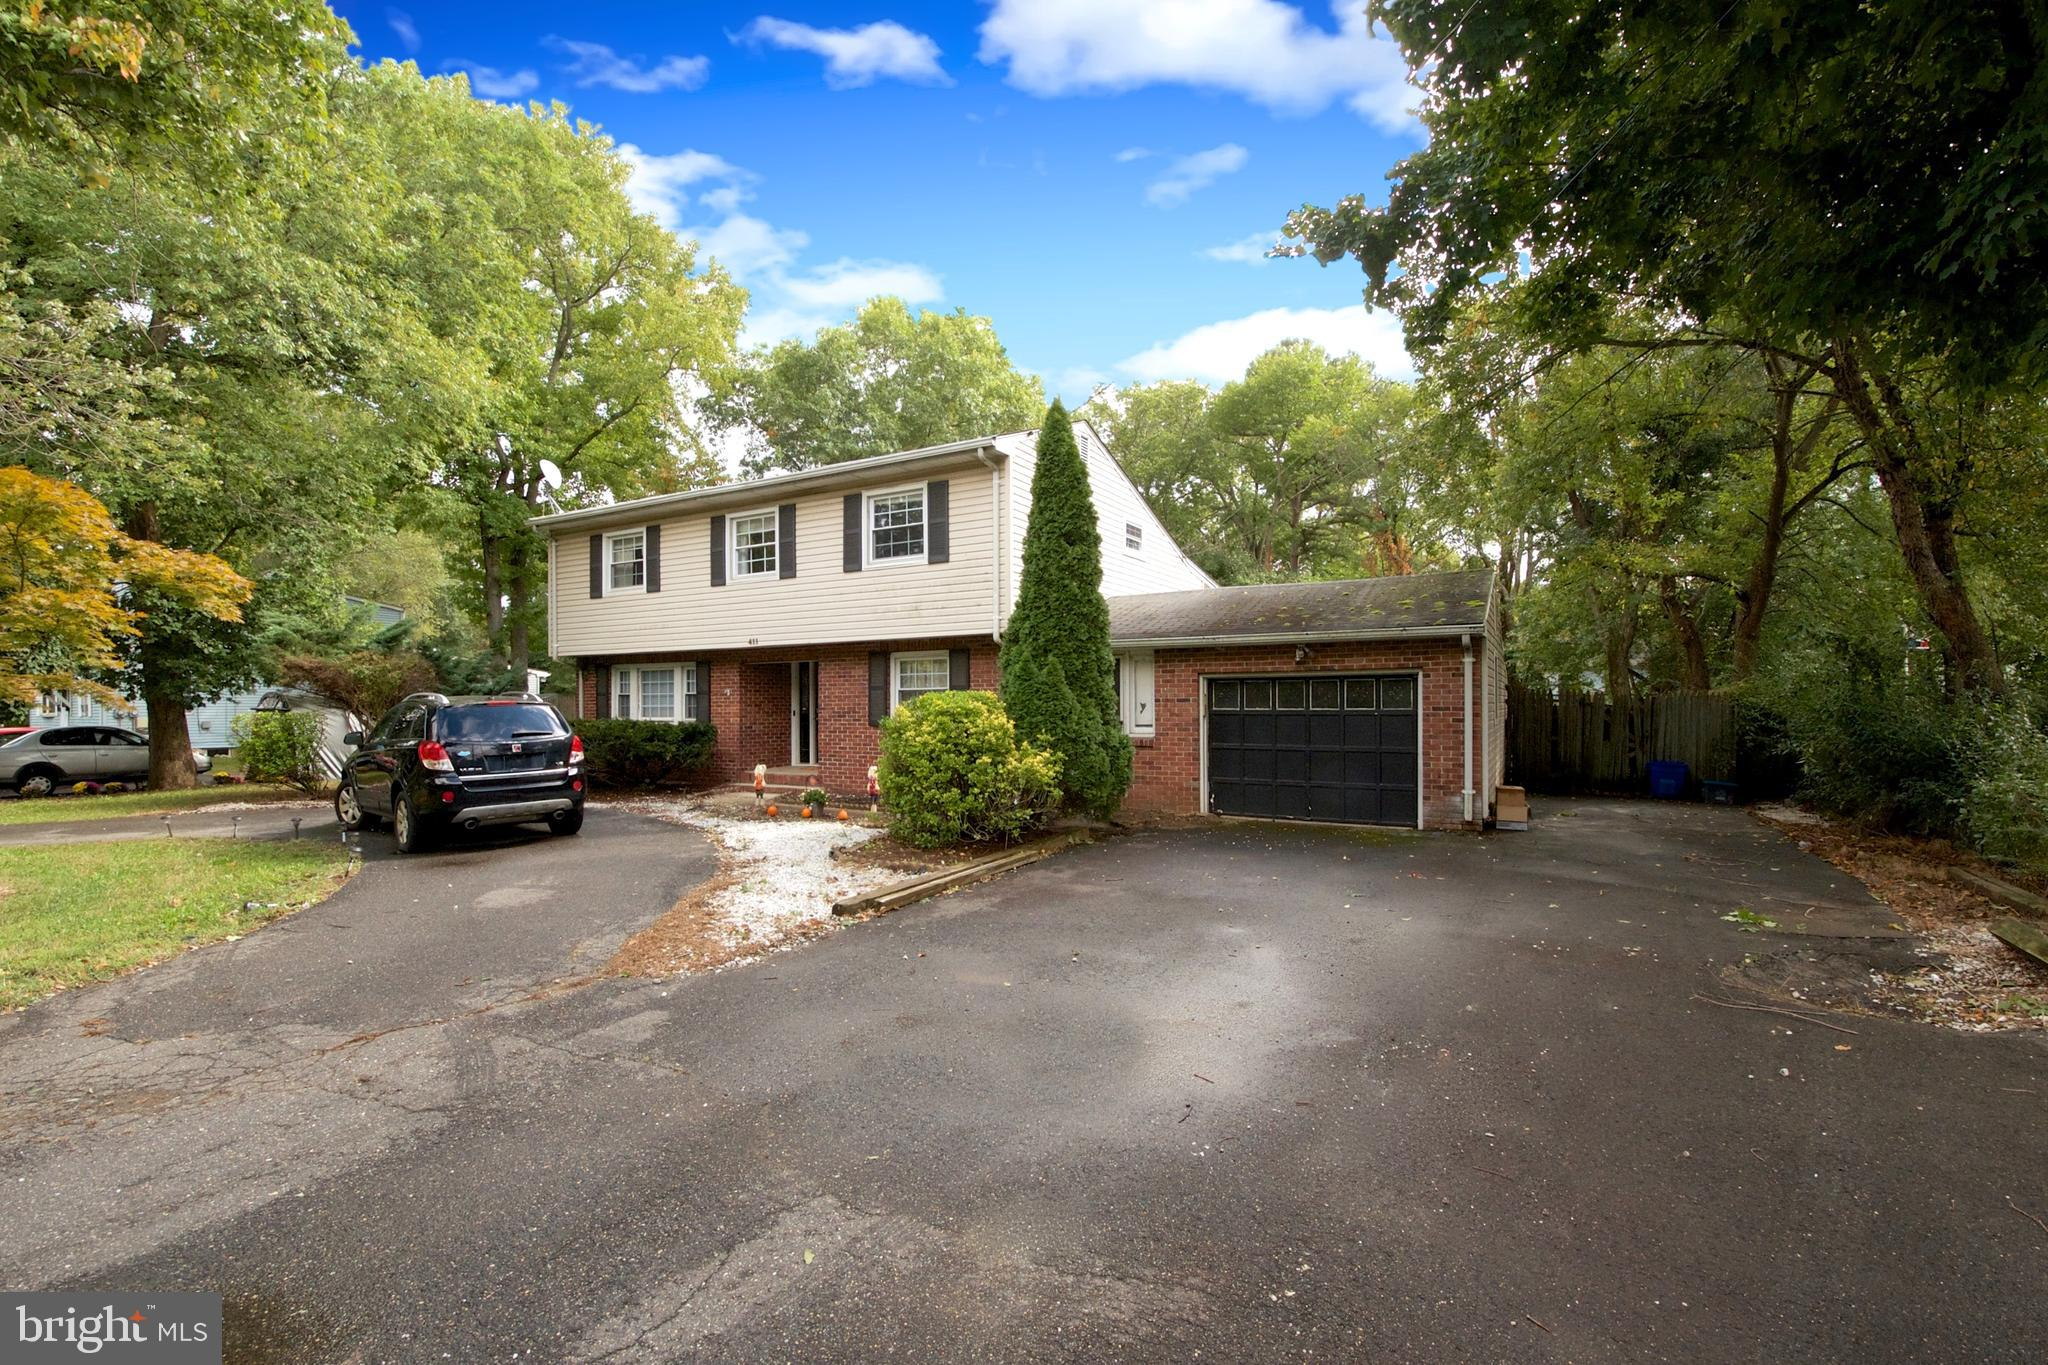 411 MANALAPAN ROAD, SPOTSWOOD, NJ 08884